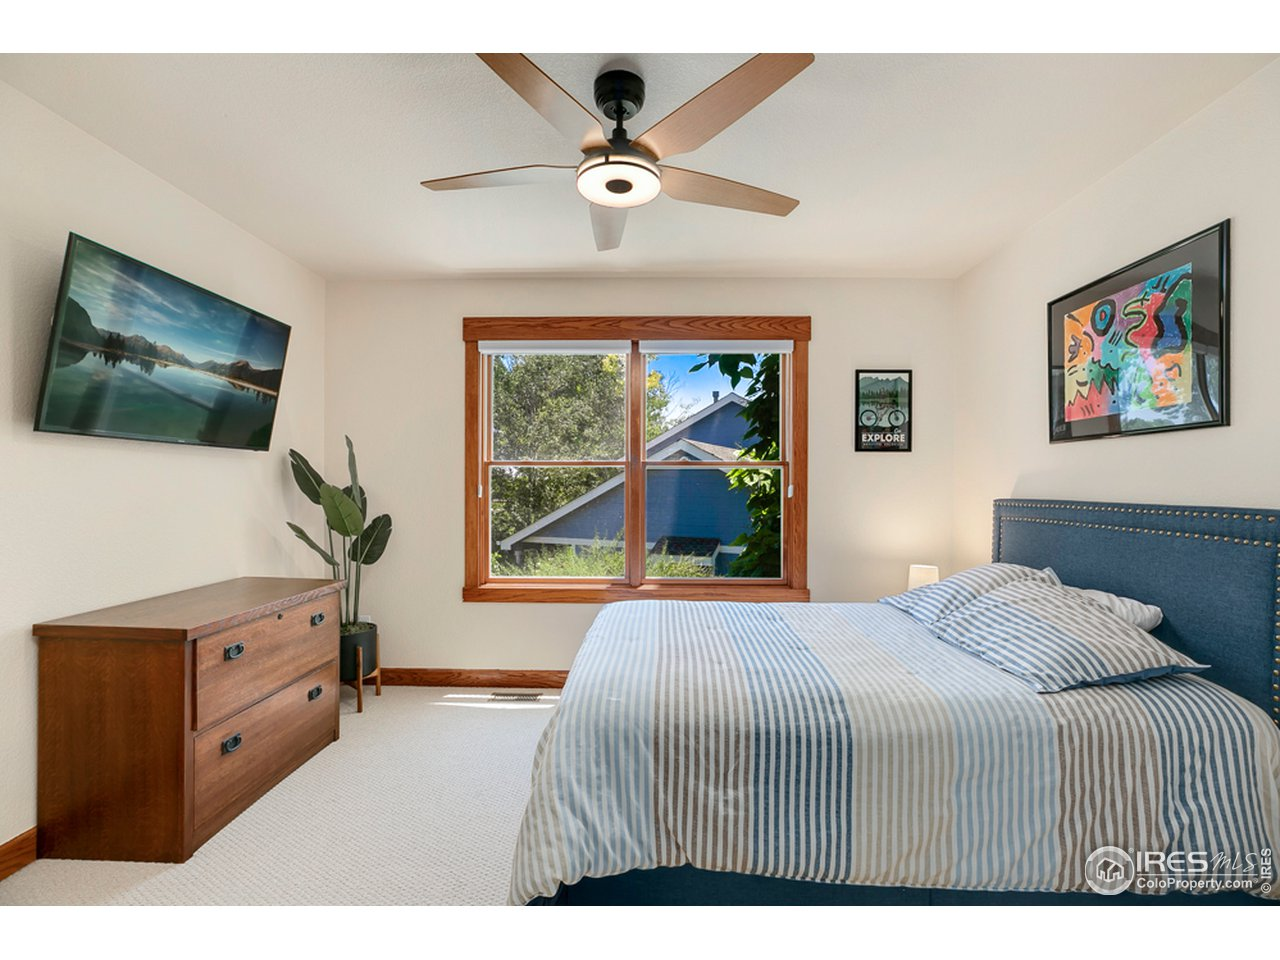 3rd bedroom upstairs is great size and has a walk in closet